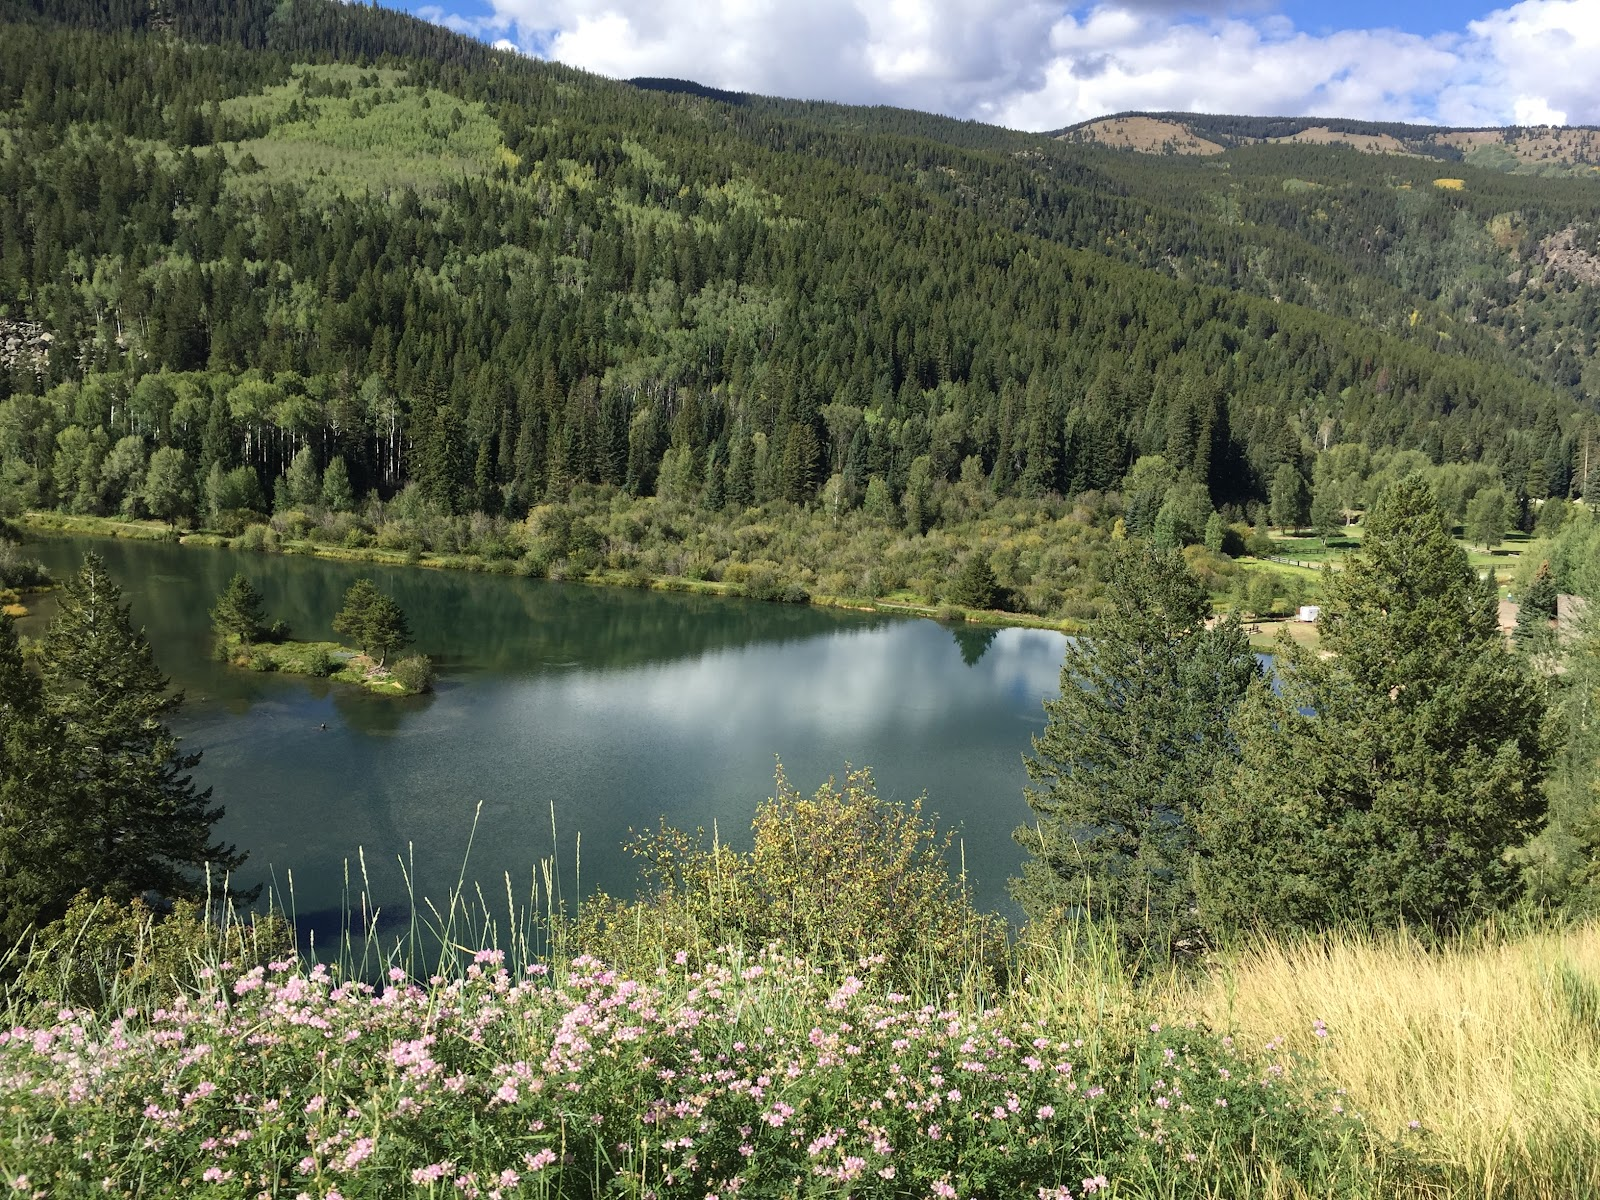 Bicycling Independence Pass - pond and flowers